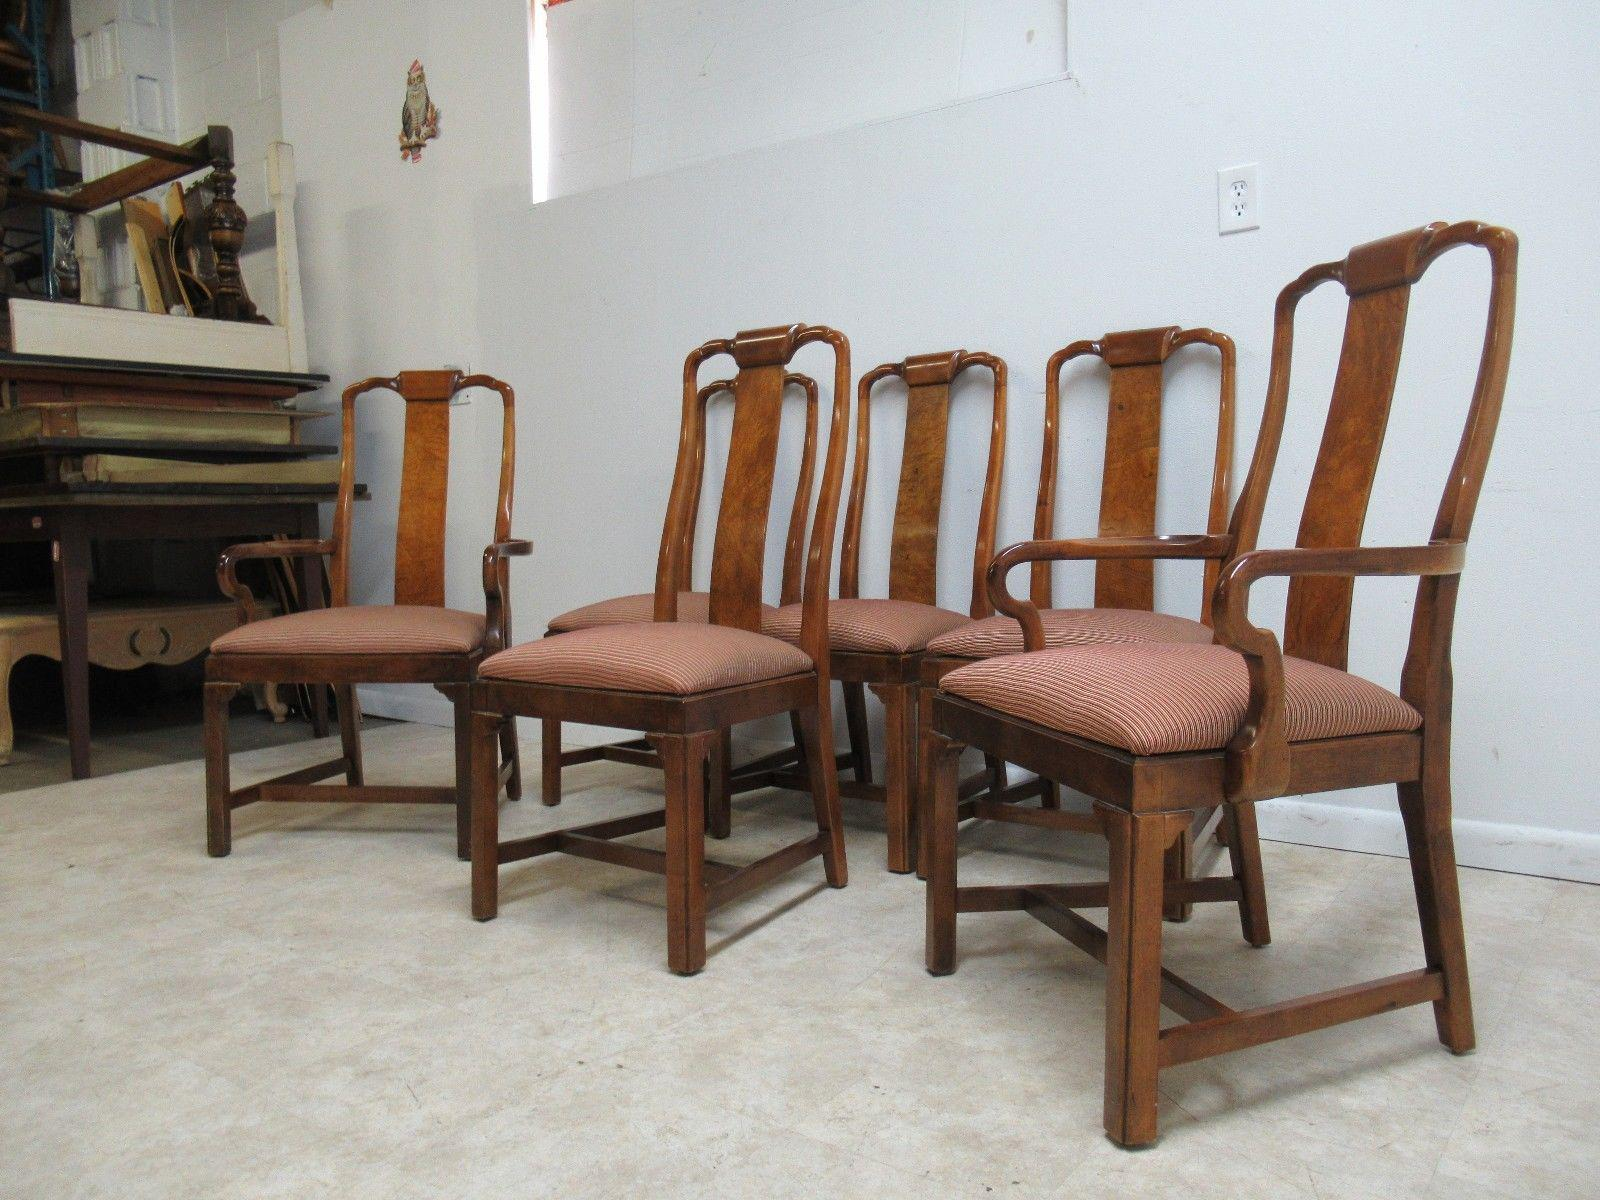 Vintage Drexel Asian Chinoiserie Dining Chairs   Set Of 6   Image 3 Of 11